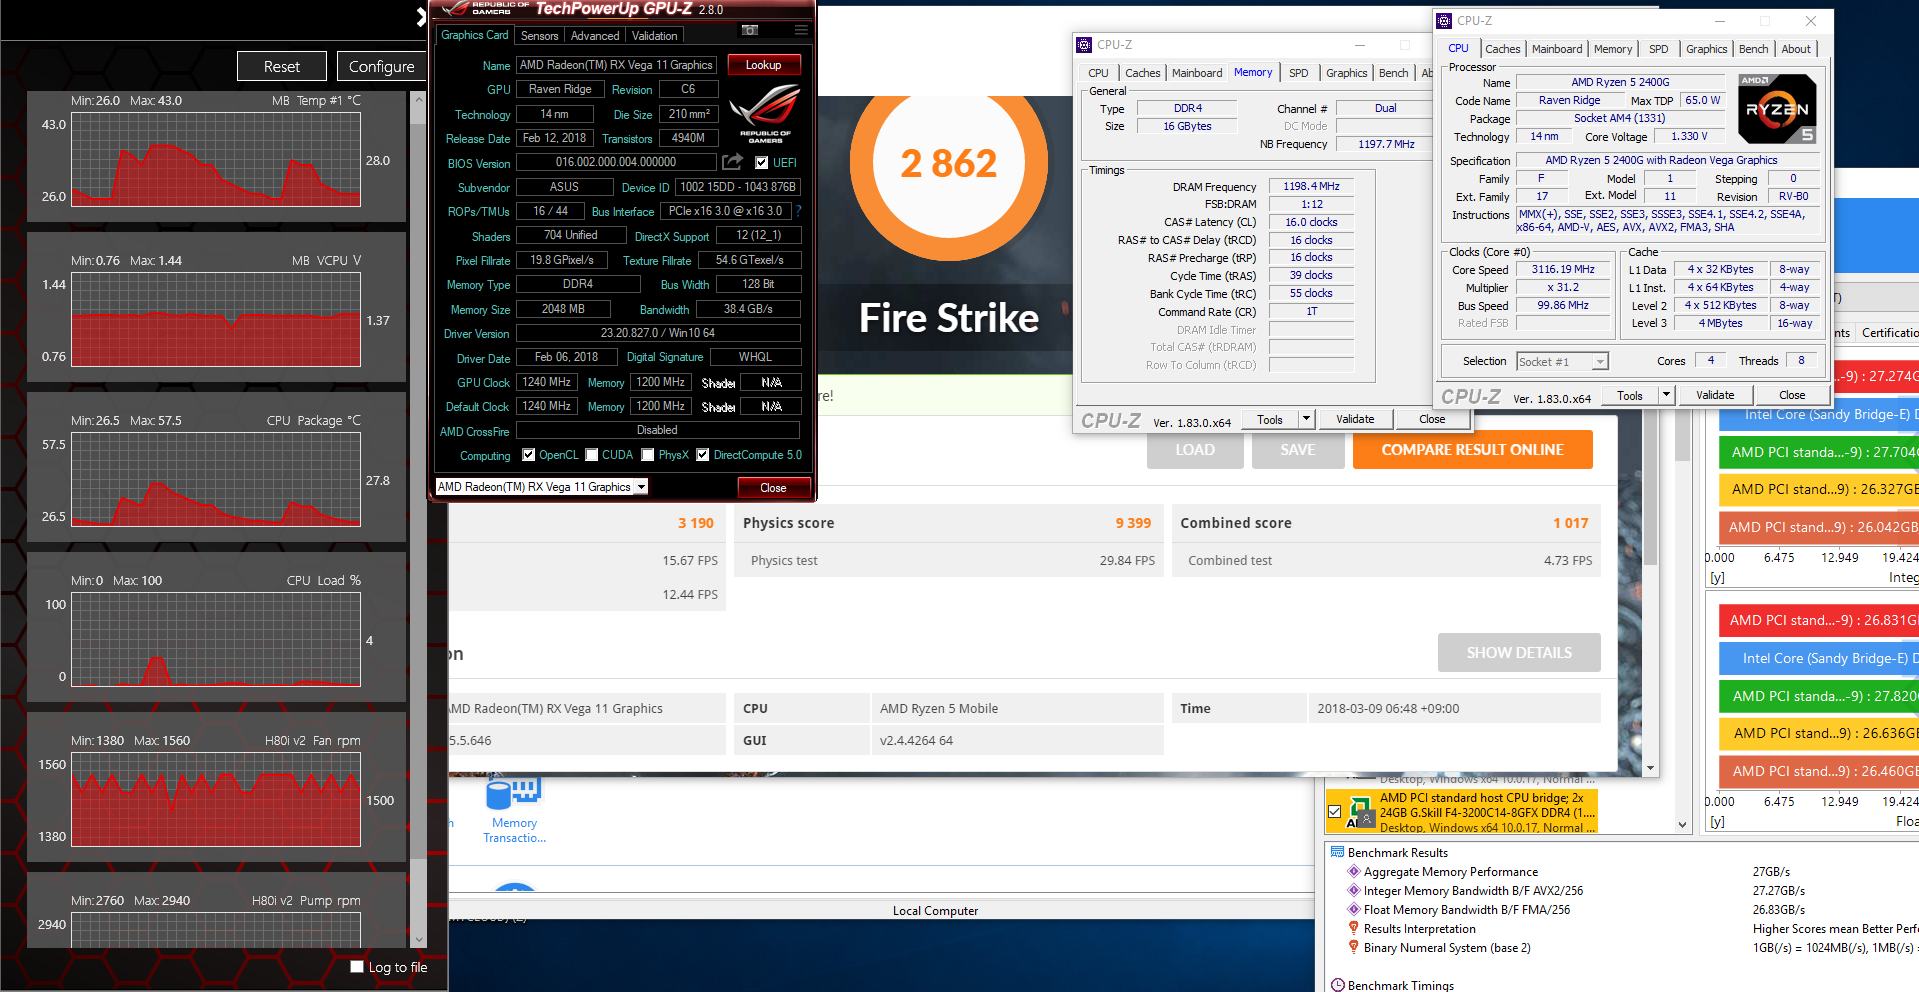 Ryzen 5 2400G Overclock with Firestrike and Timespy | [H]ard|Forum